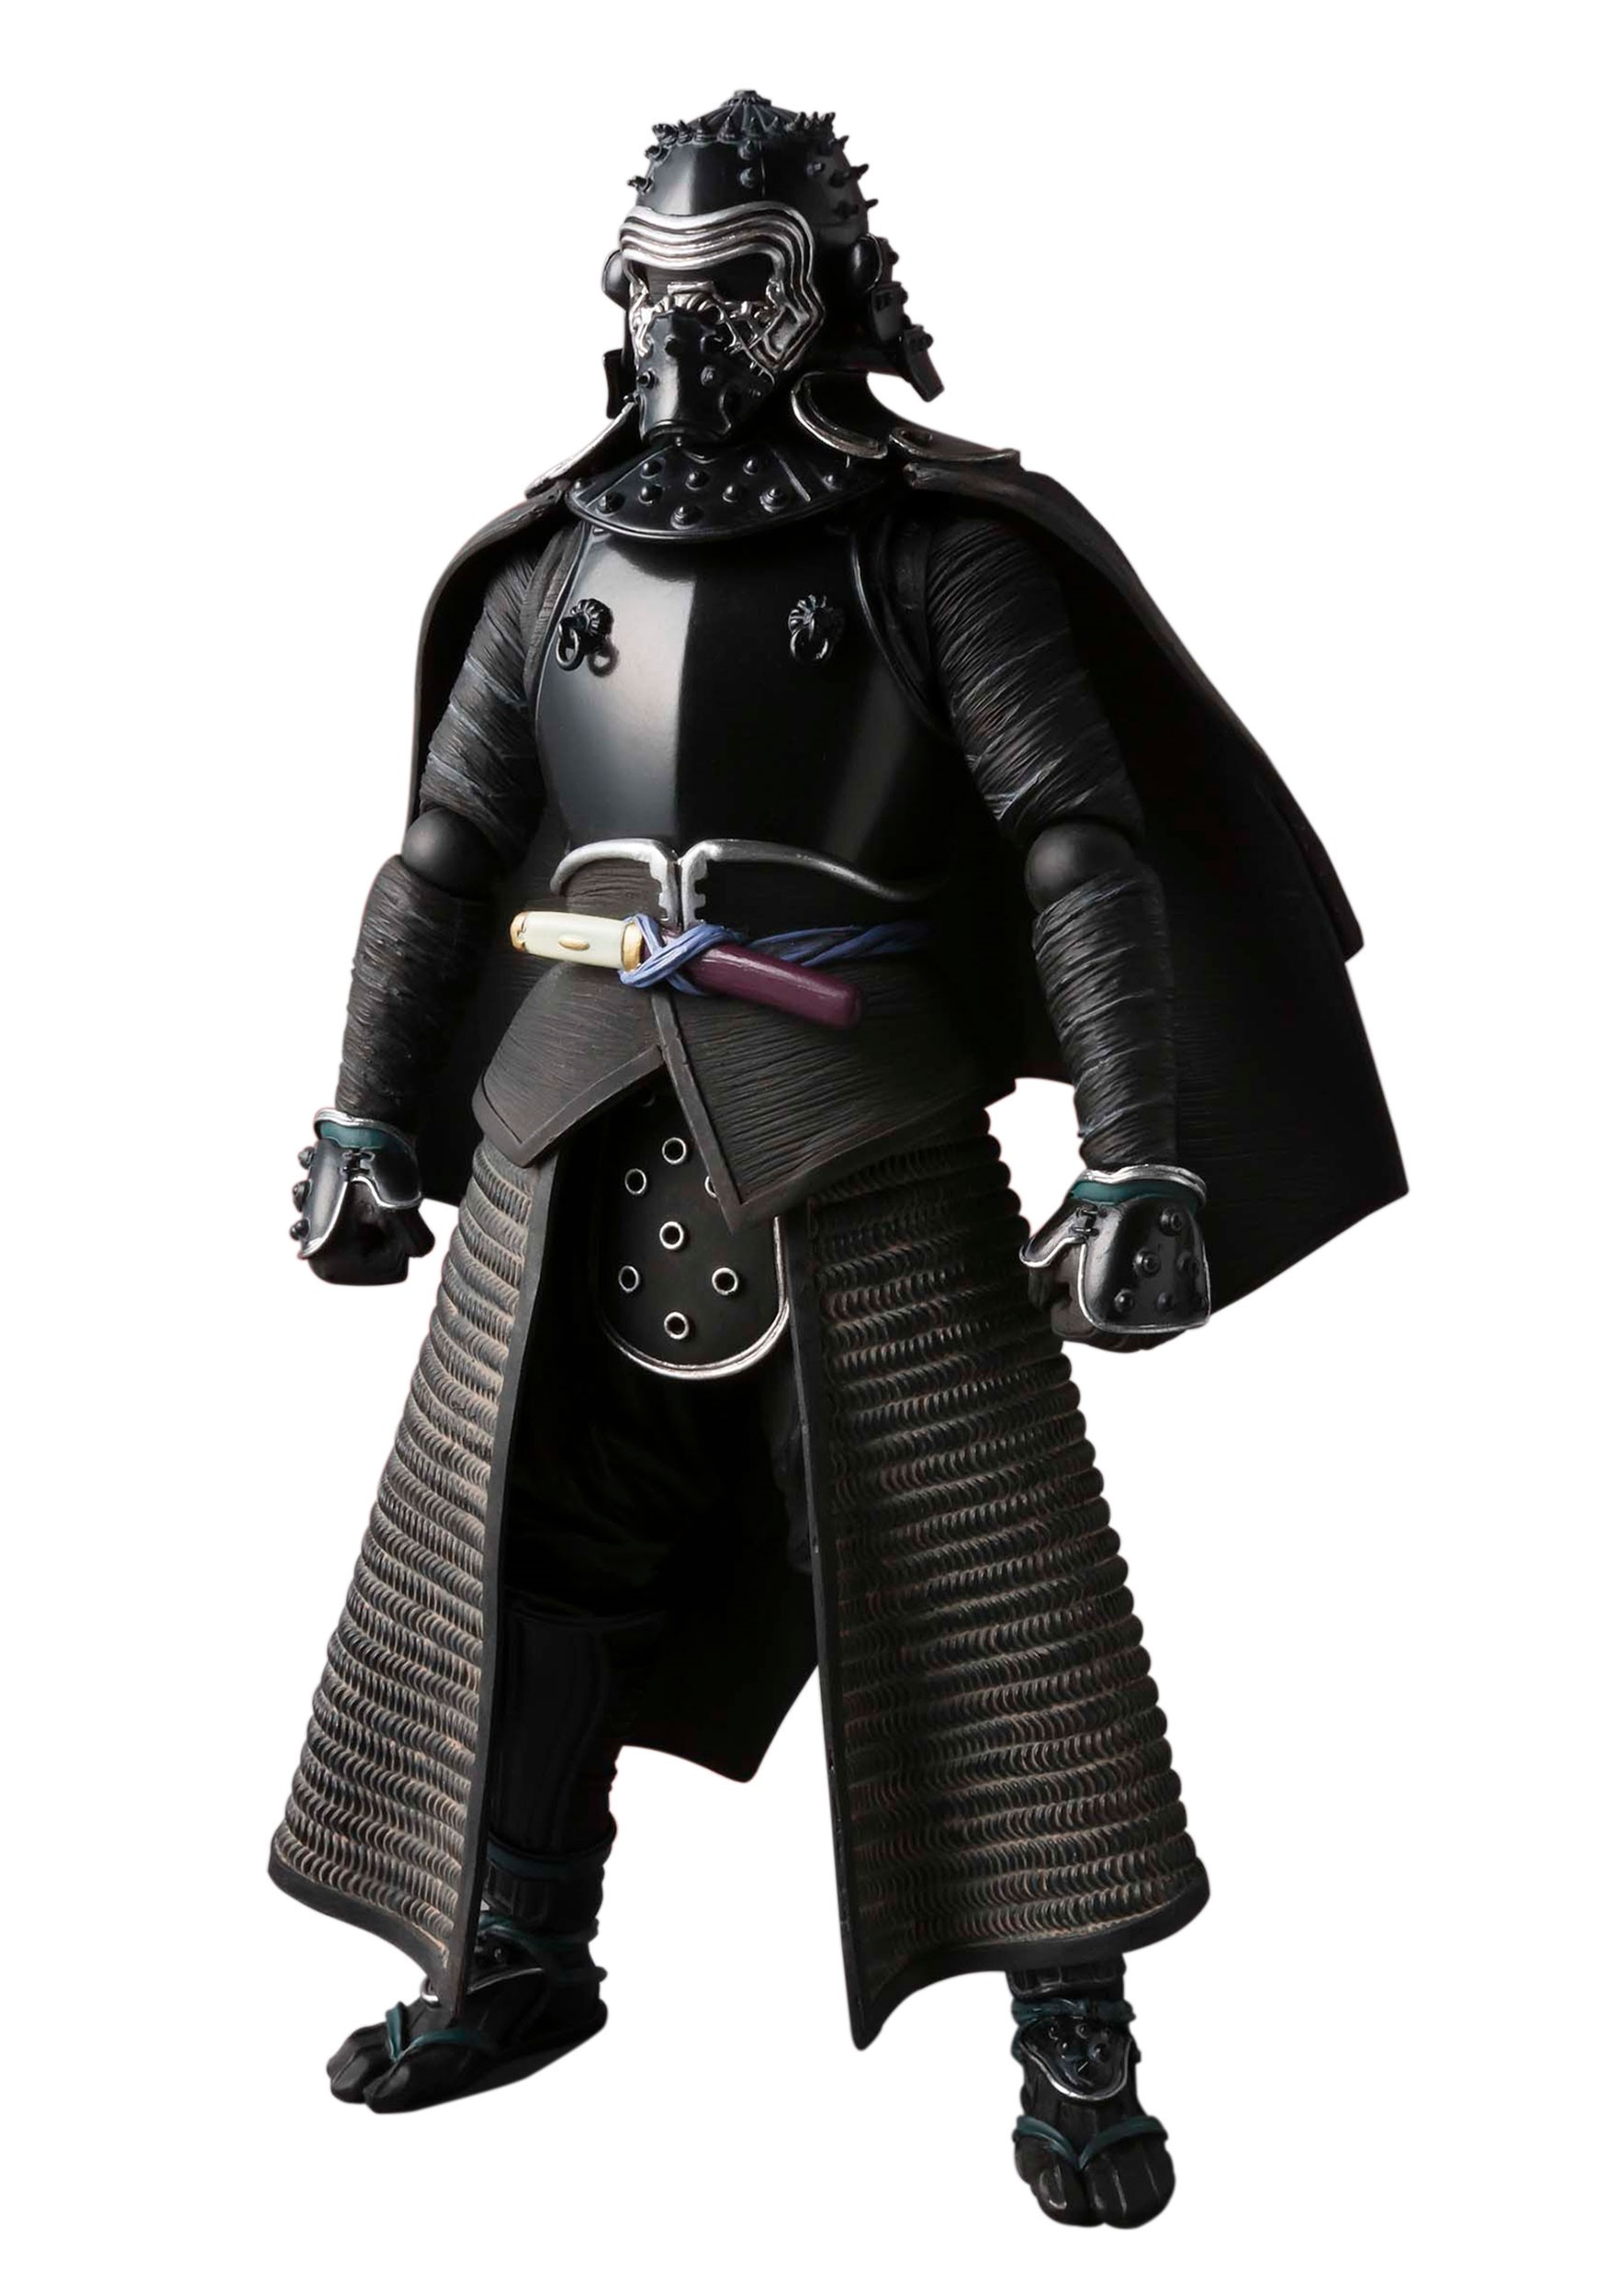 Kylo Ren Samurai Star Wars Bandai Meisho Movie Realization